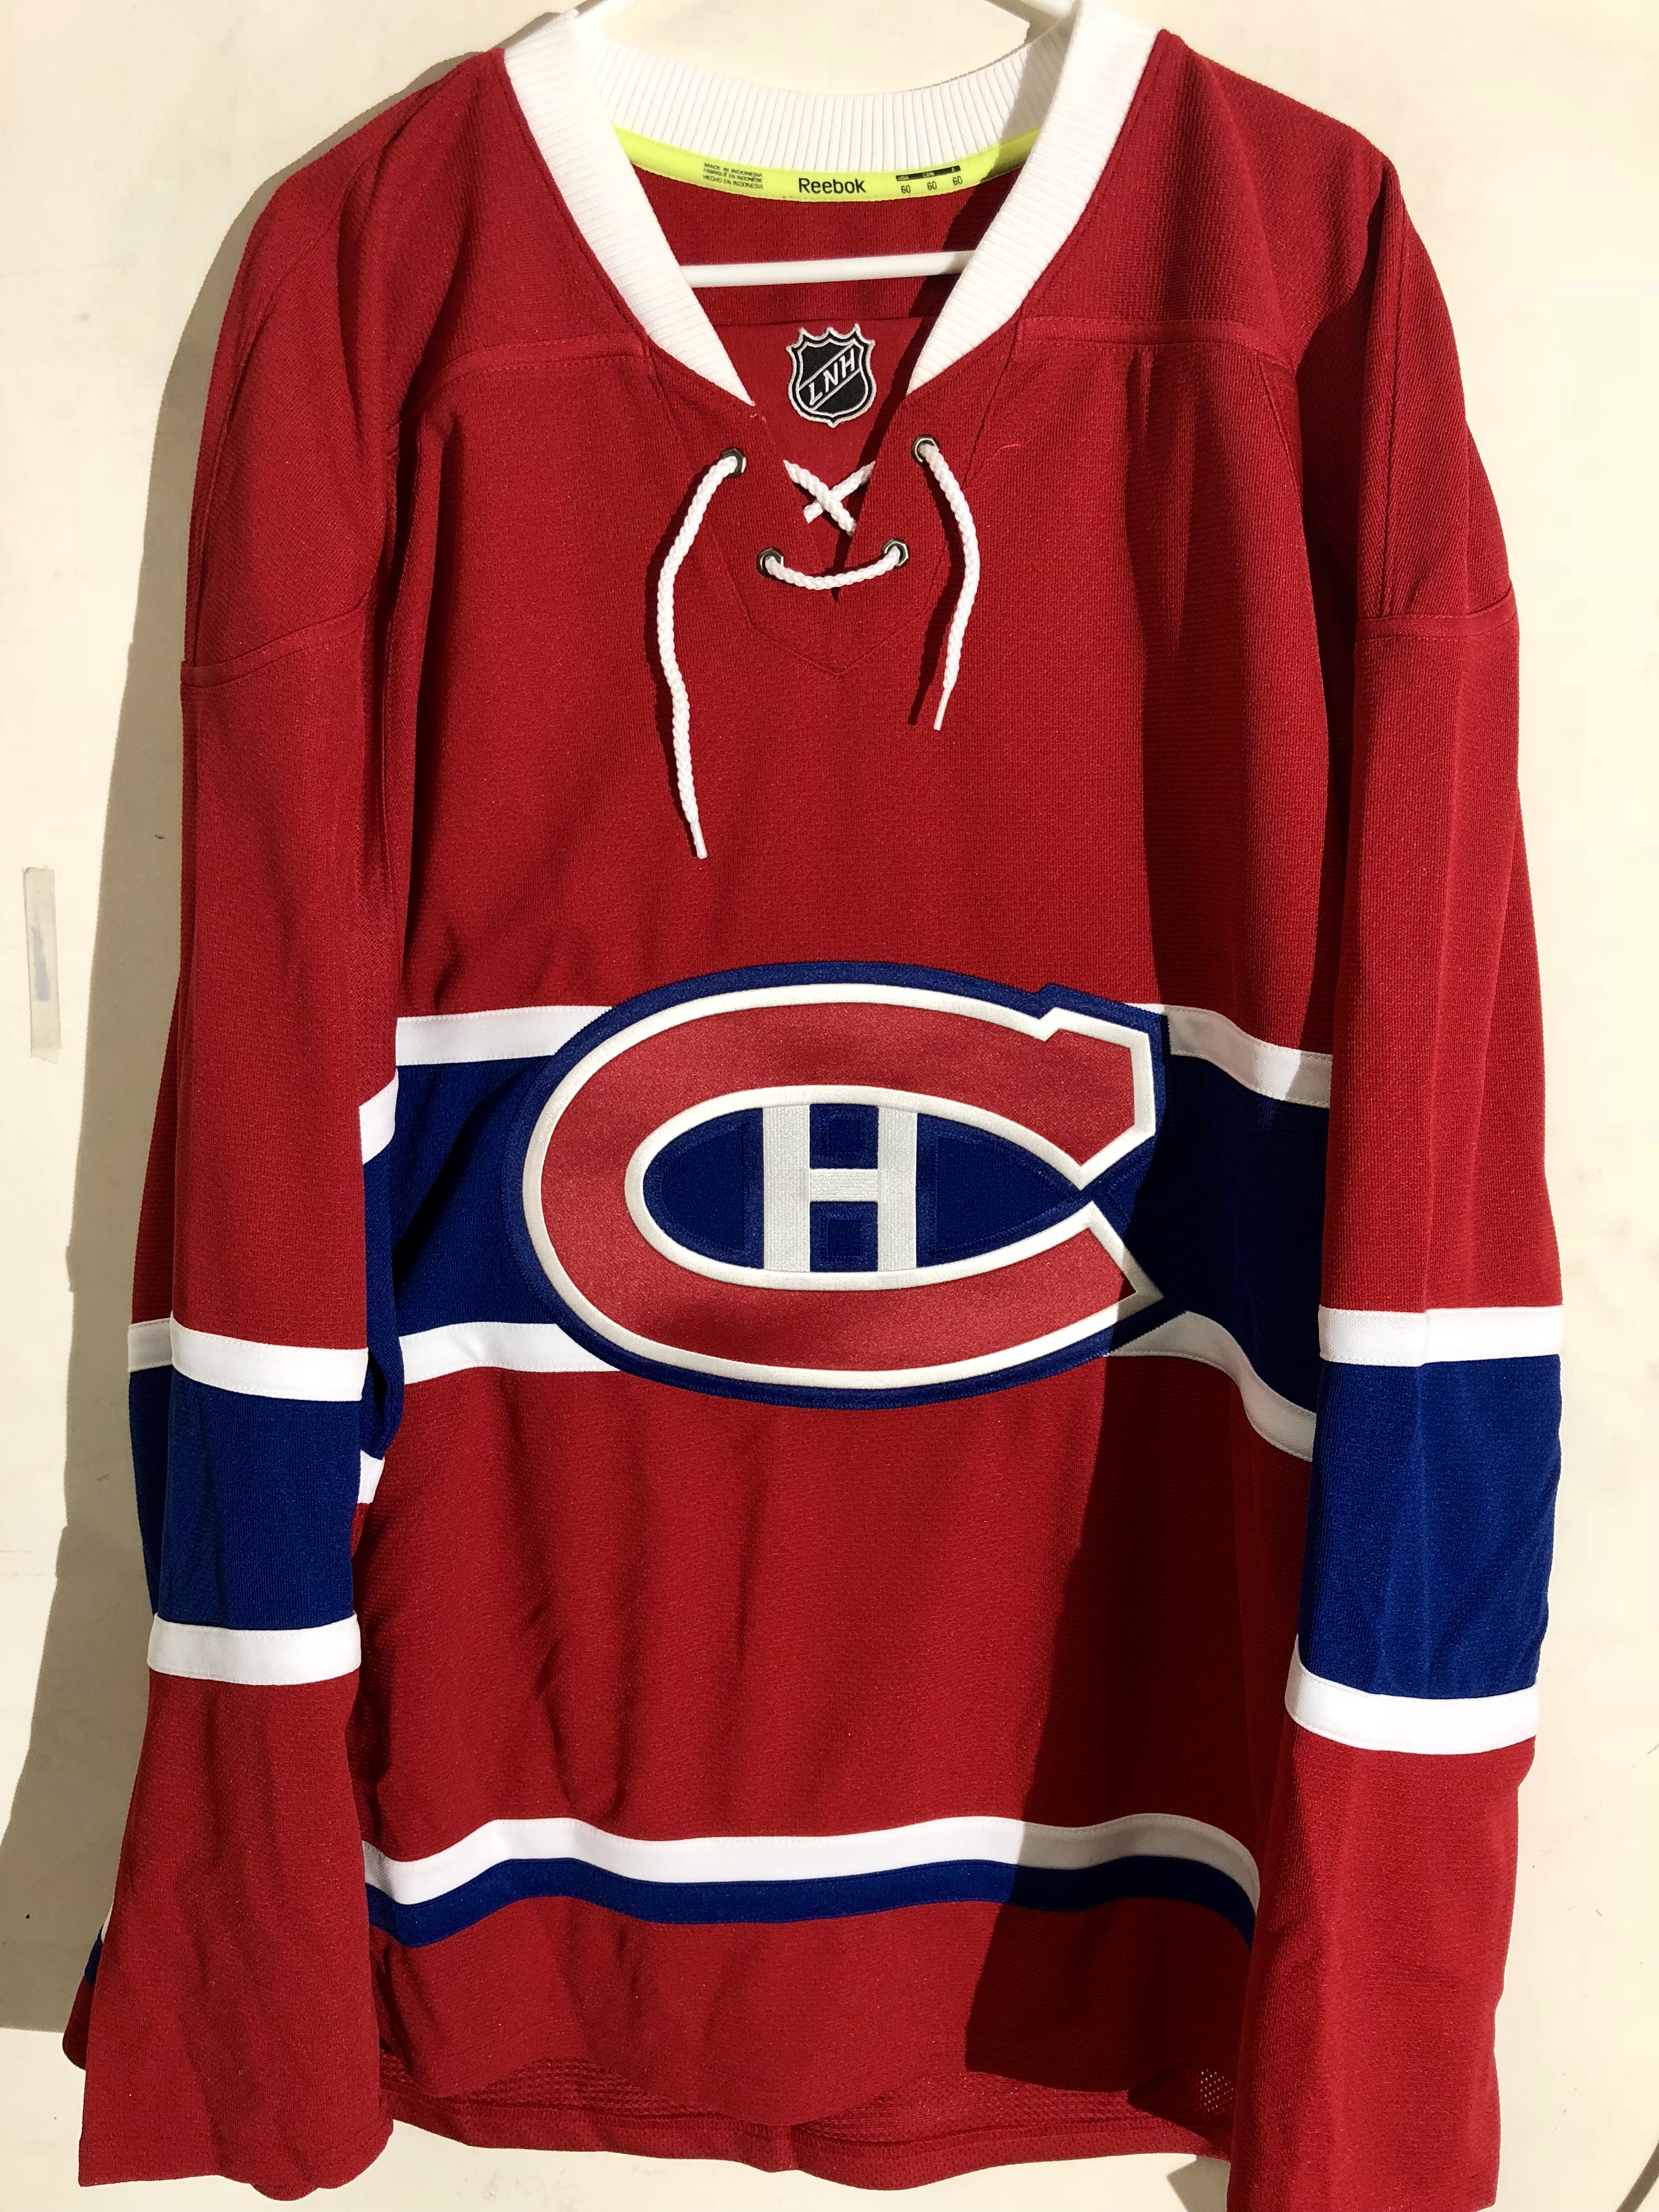 new arrivals f25e8 5f527 Details about Reebok Authentic NHL Jersey Montreal Canadiens Team Red sz 60